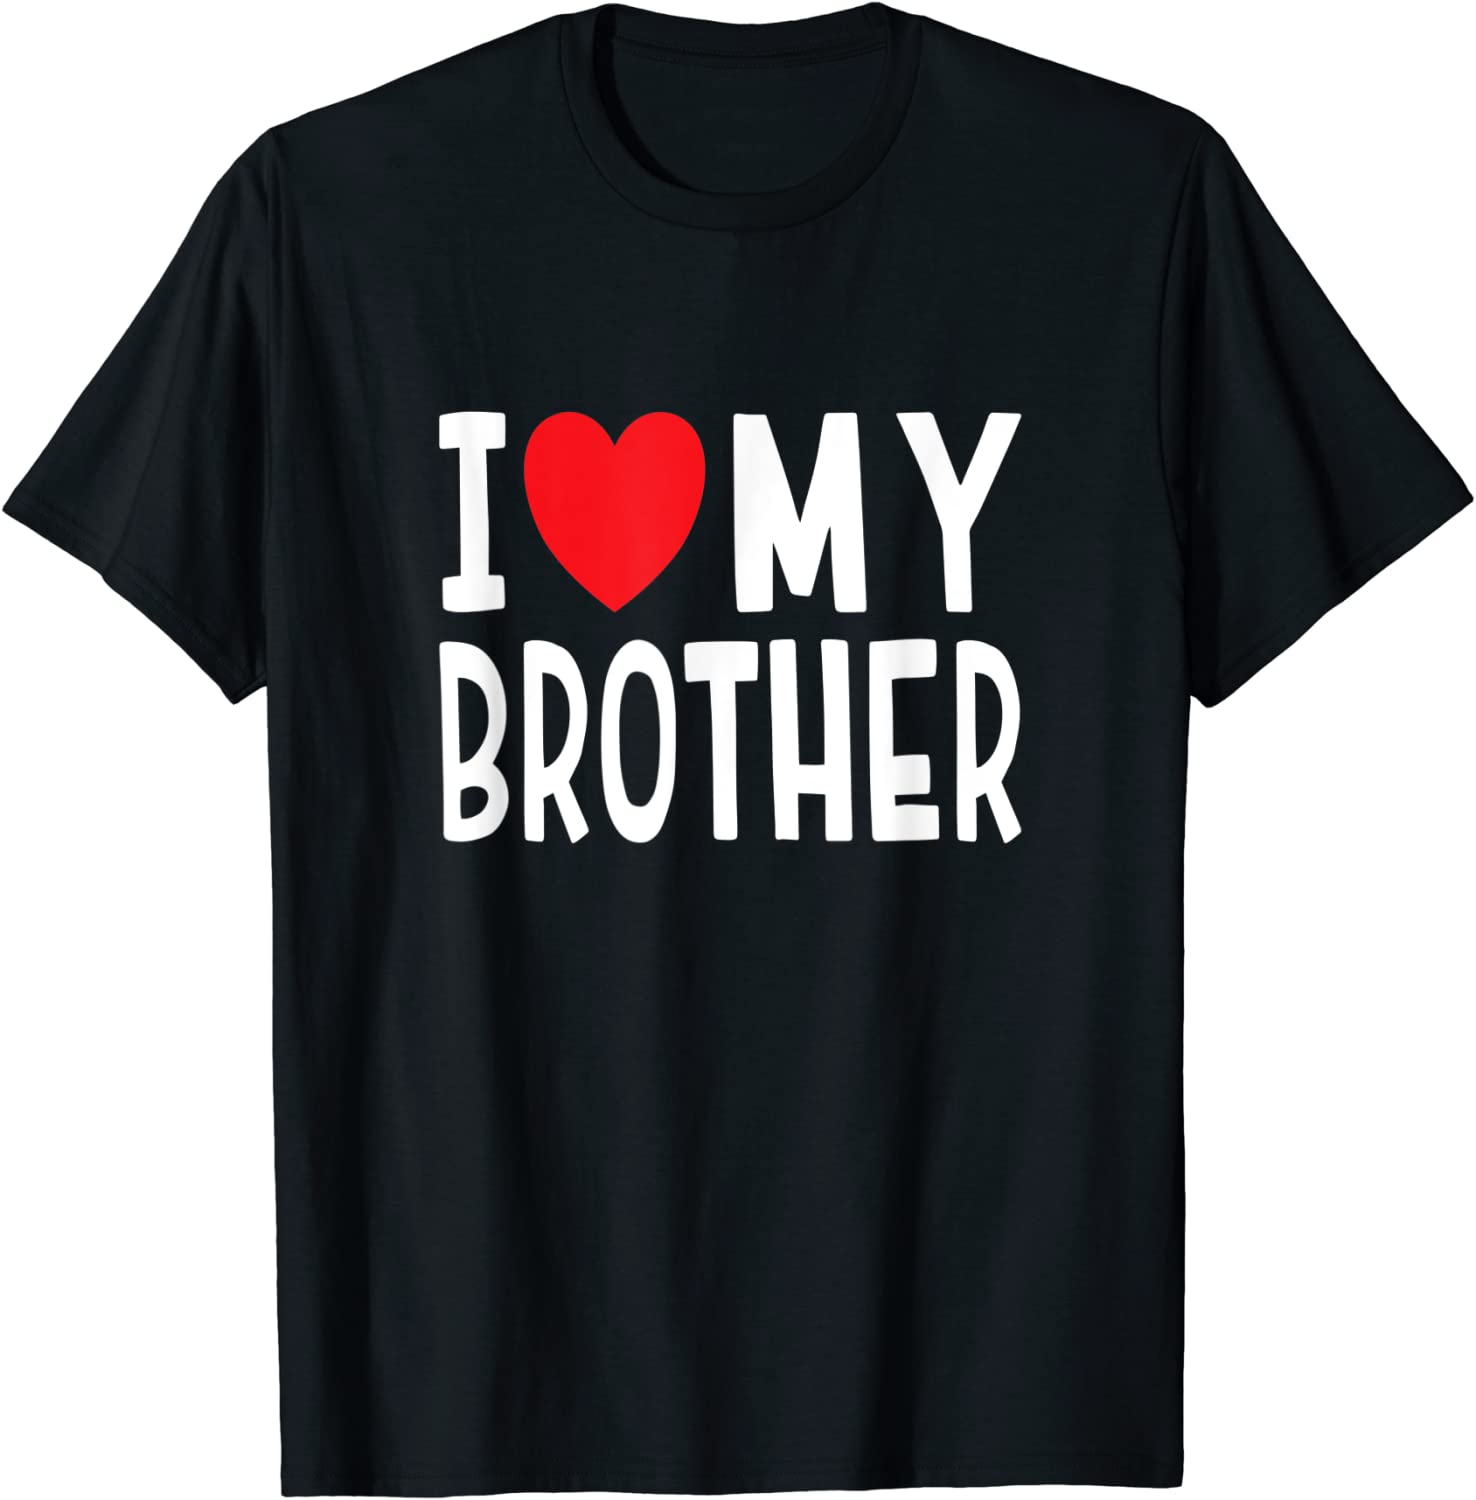 My brother love 81 Brother